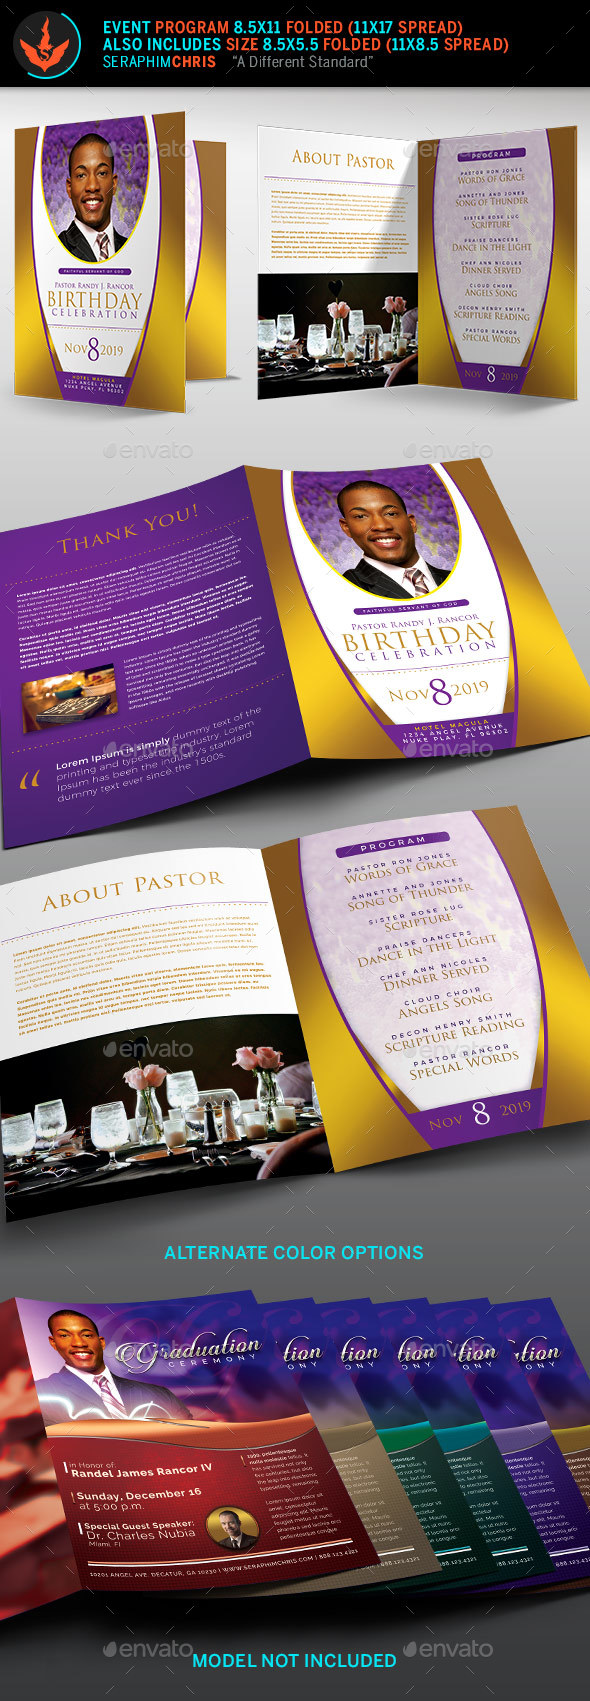 Royal Pastor Birthday Party Program Template - Informational Brochures